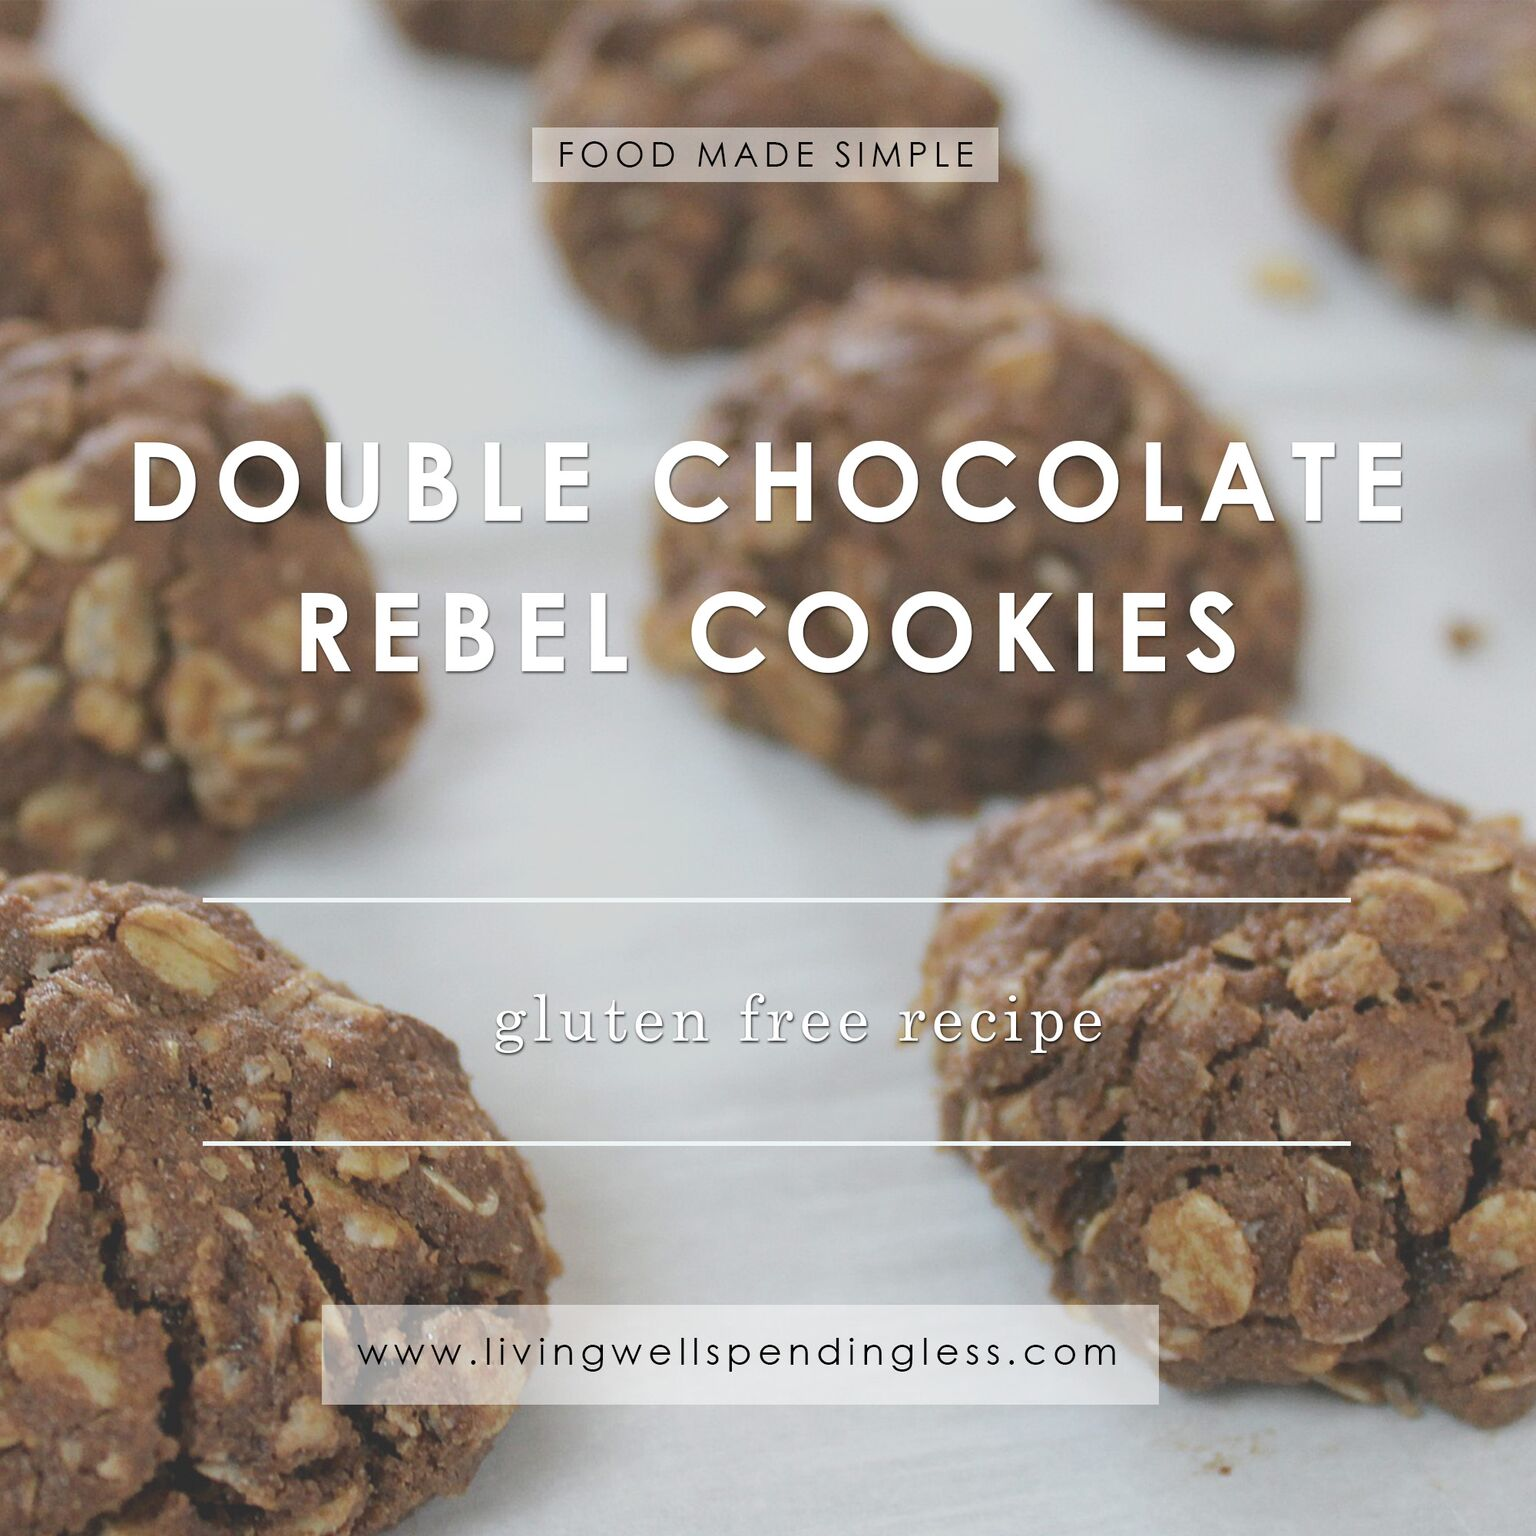 Gluten Free Cookies | Double Chocolate Rebel Cookies | Easy Cookie Recipe | Chocolate Cookies | Valentine's Day Desserts